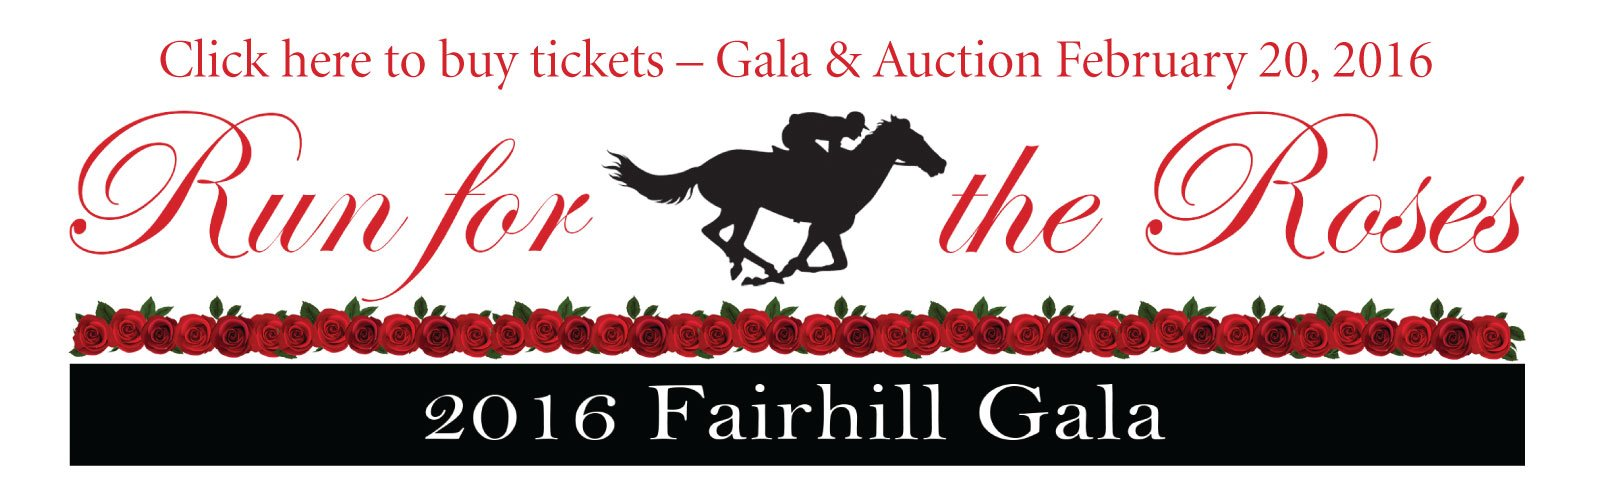 The Fairhill Gala and Auction February 20 2016